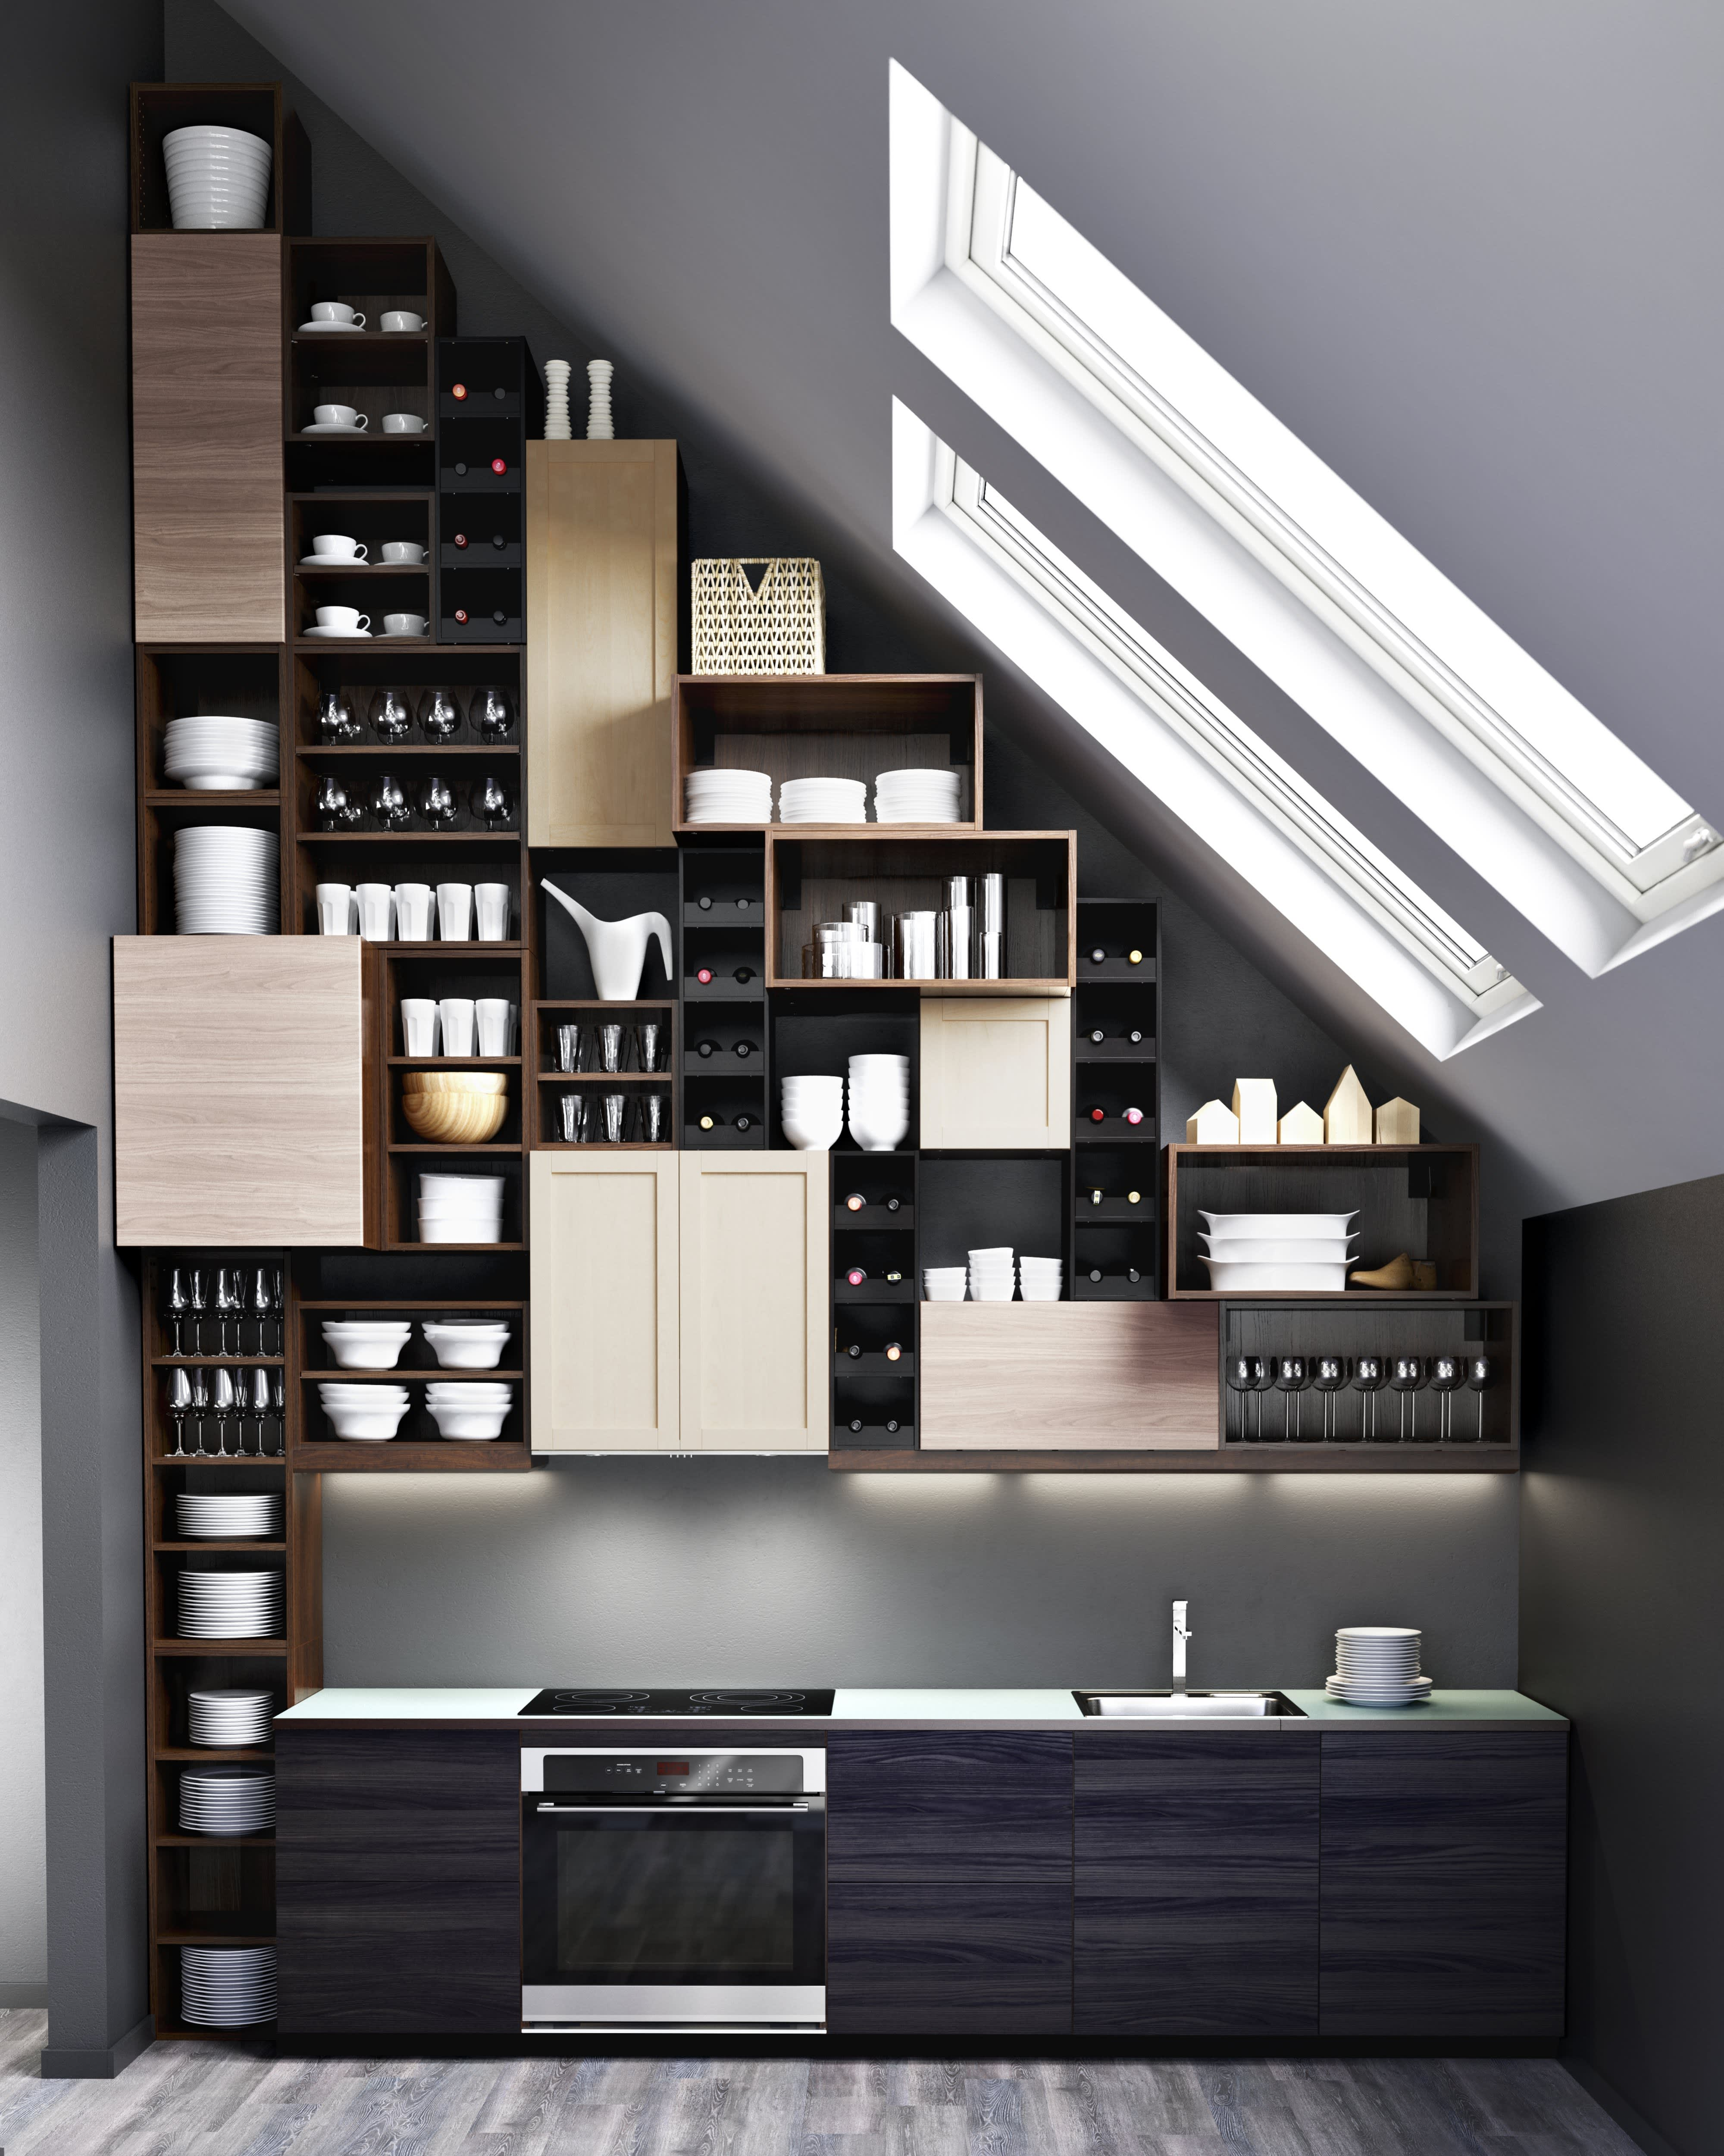 A Guide to IKEA's New SEKTION Kitchen Cabinets! We've Got Sizes, Prices, and Photos: gallery image 5